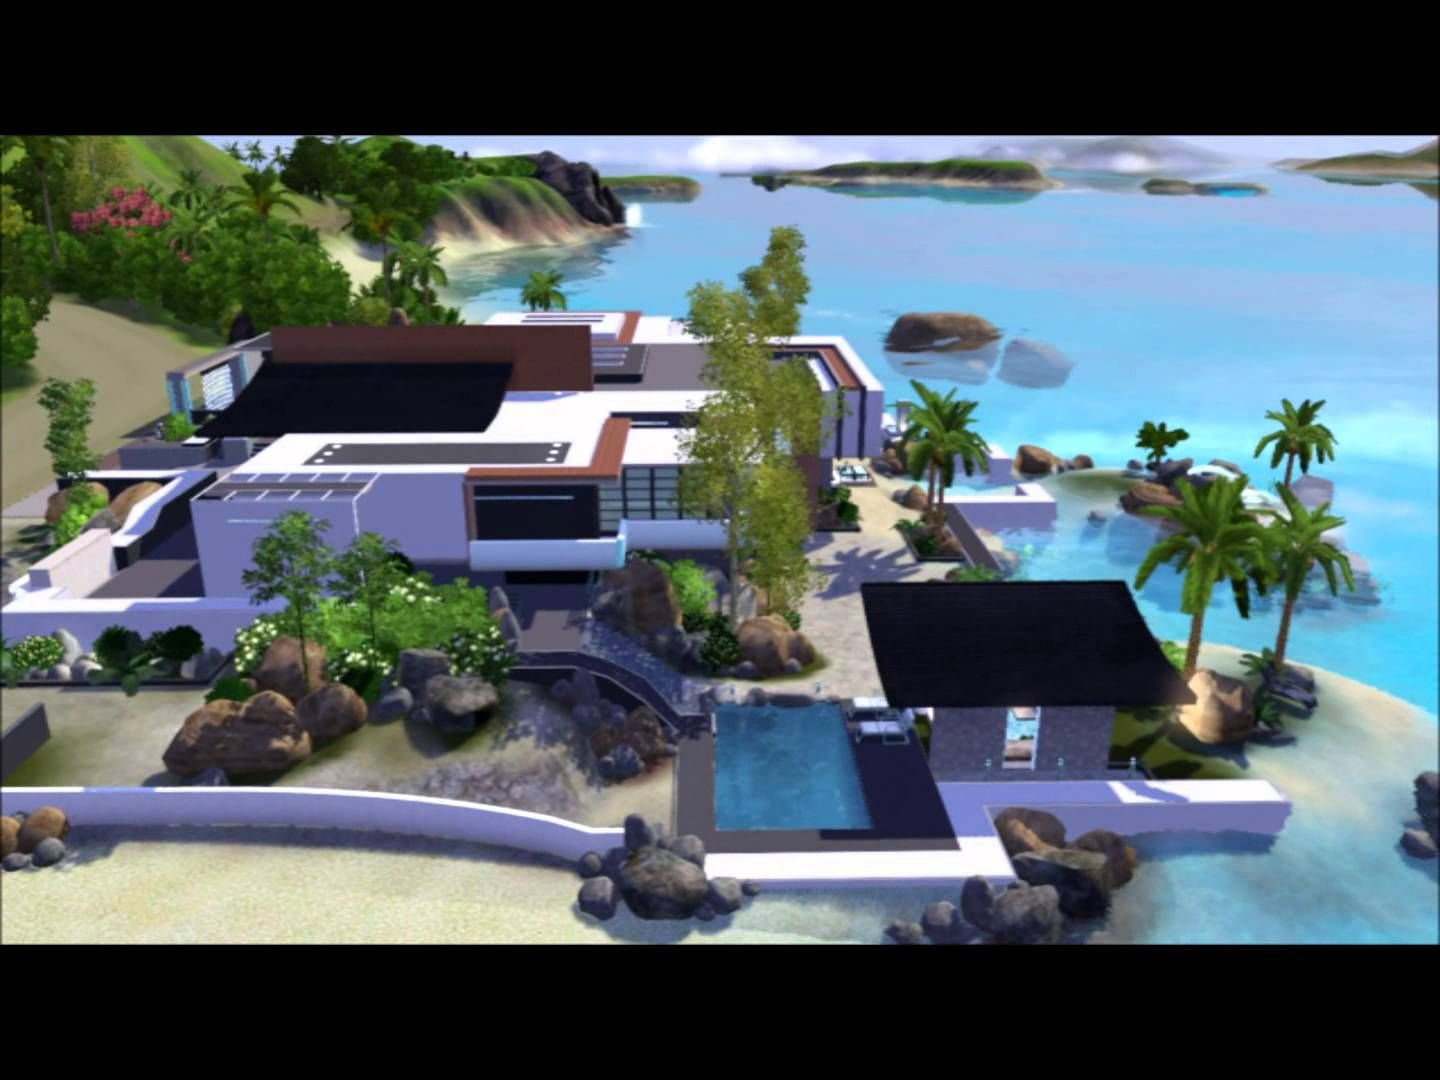 tropical seaside house the sims 3 no cc dwnl link the good